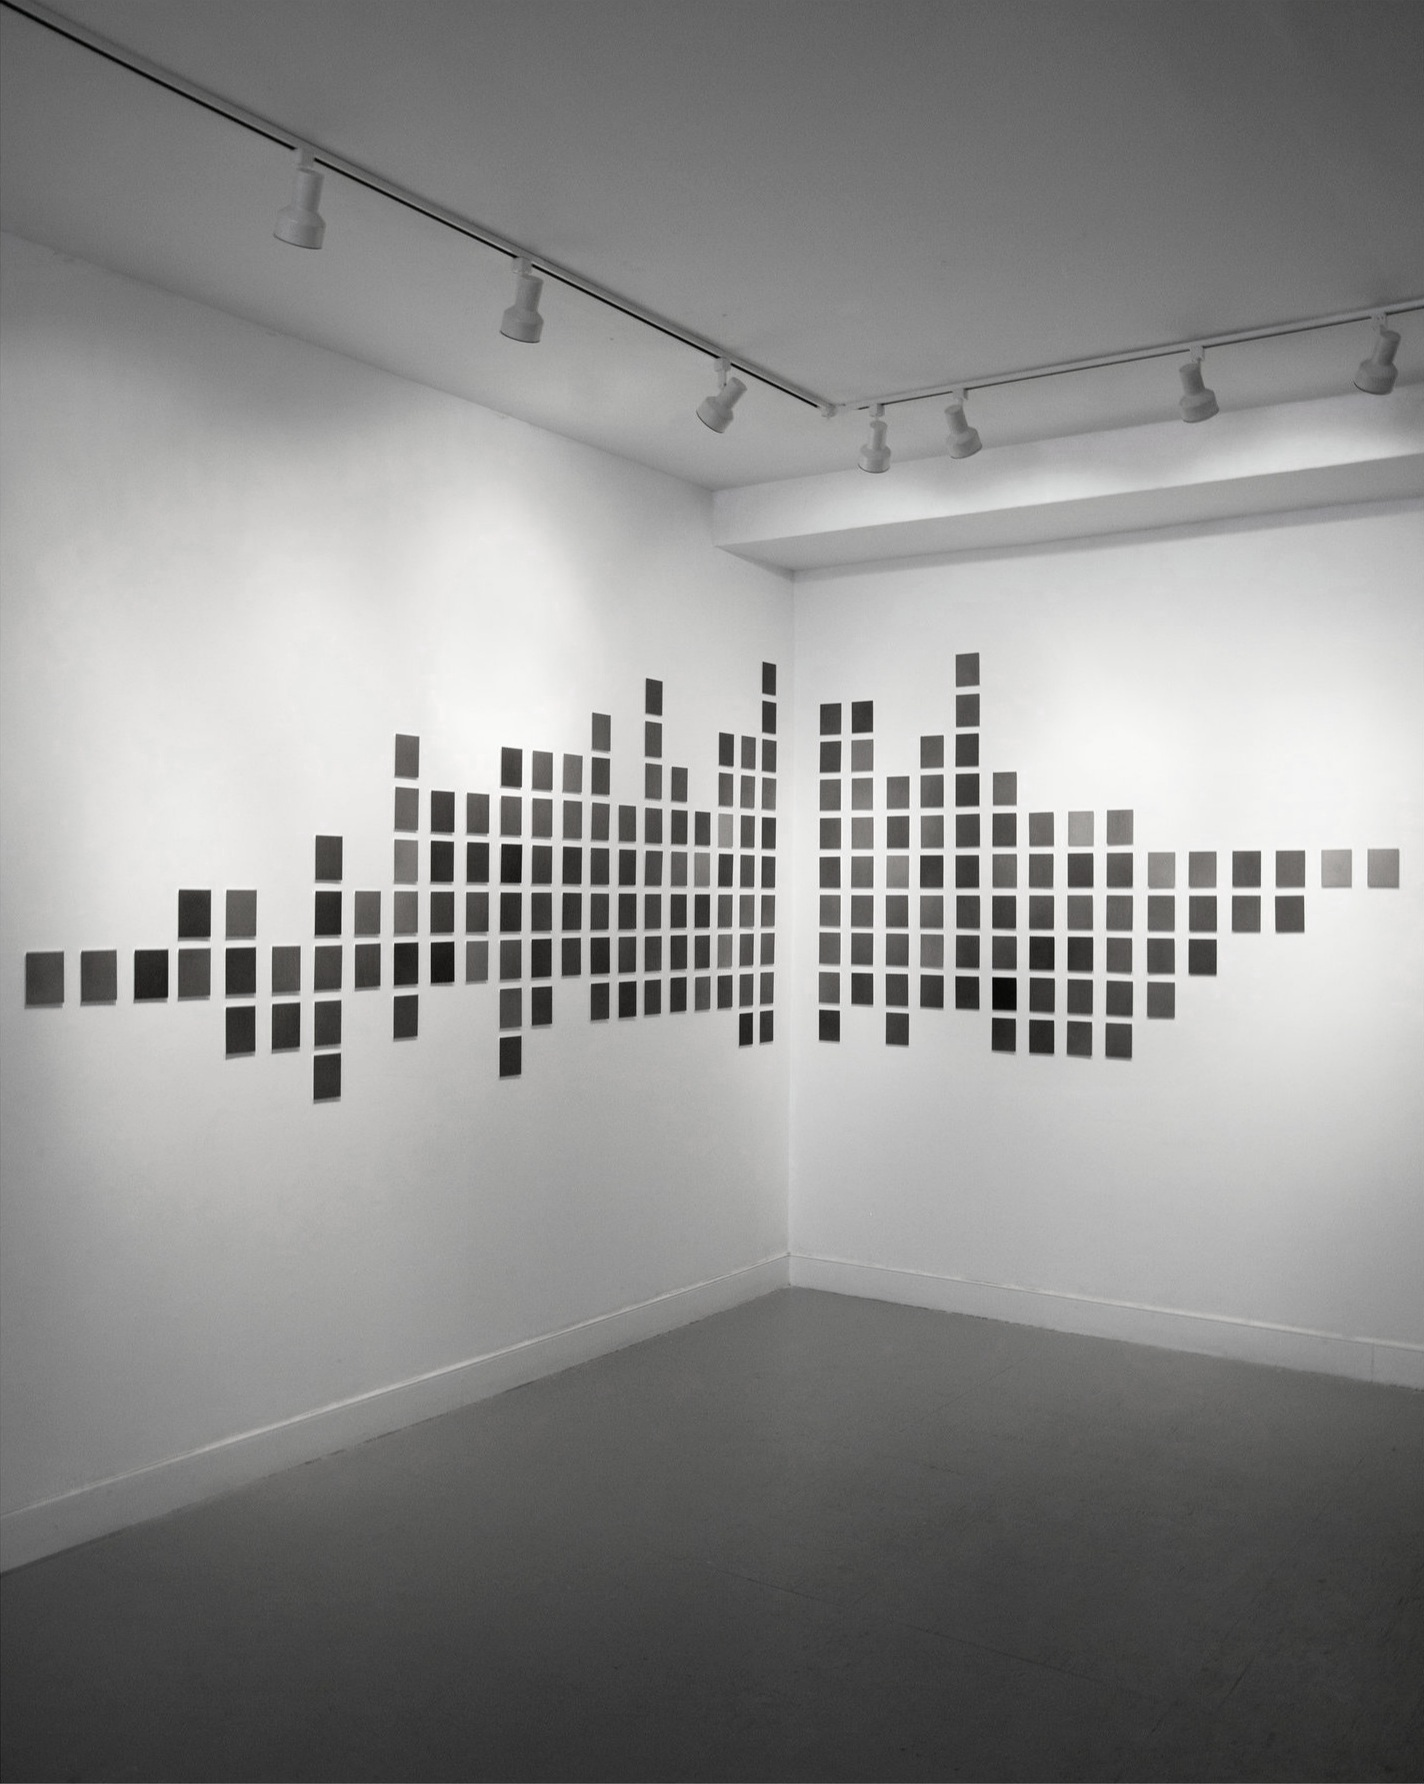 Installation view at Loop Gallery, Toronto, ON, Canada